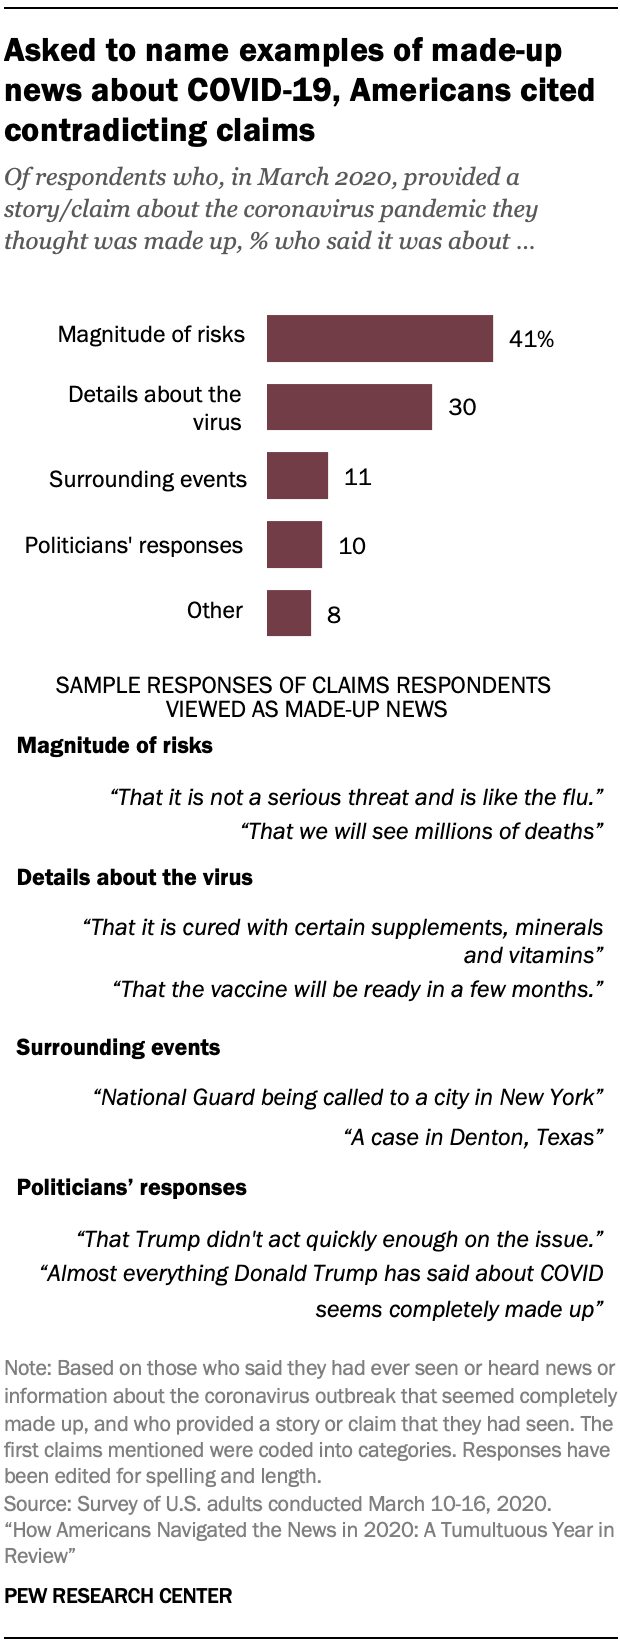 Asked to name examples of made-up news about COVID-19, Americans cited contradicting claims